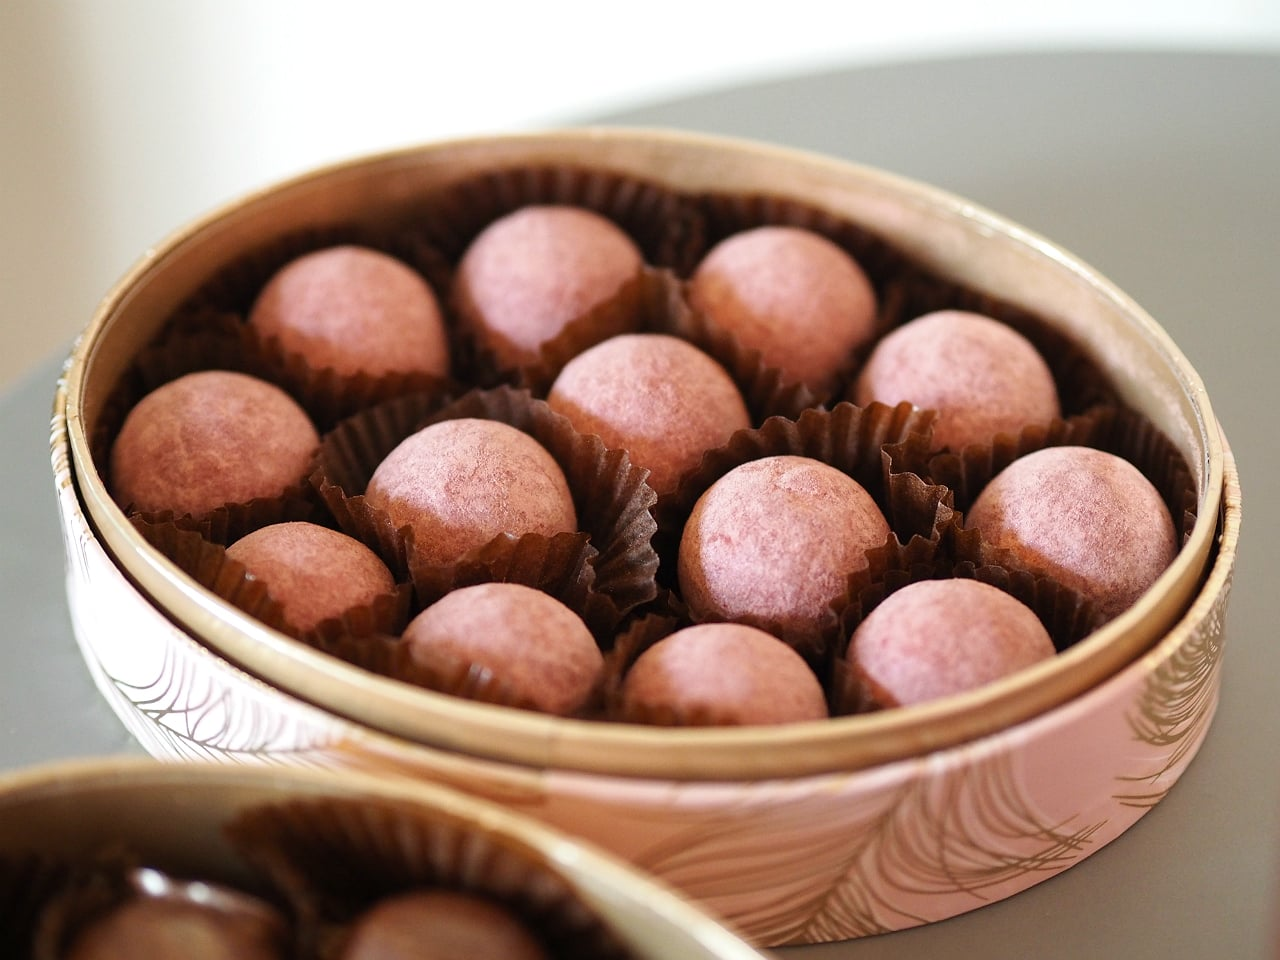 I however really fell for the champagne truffles…